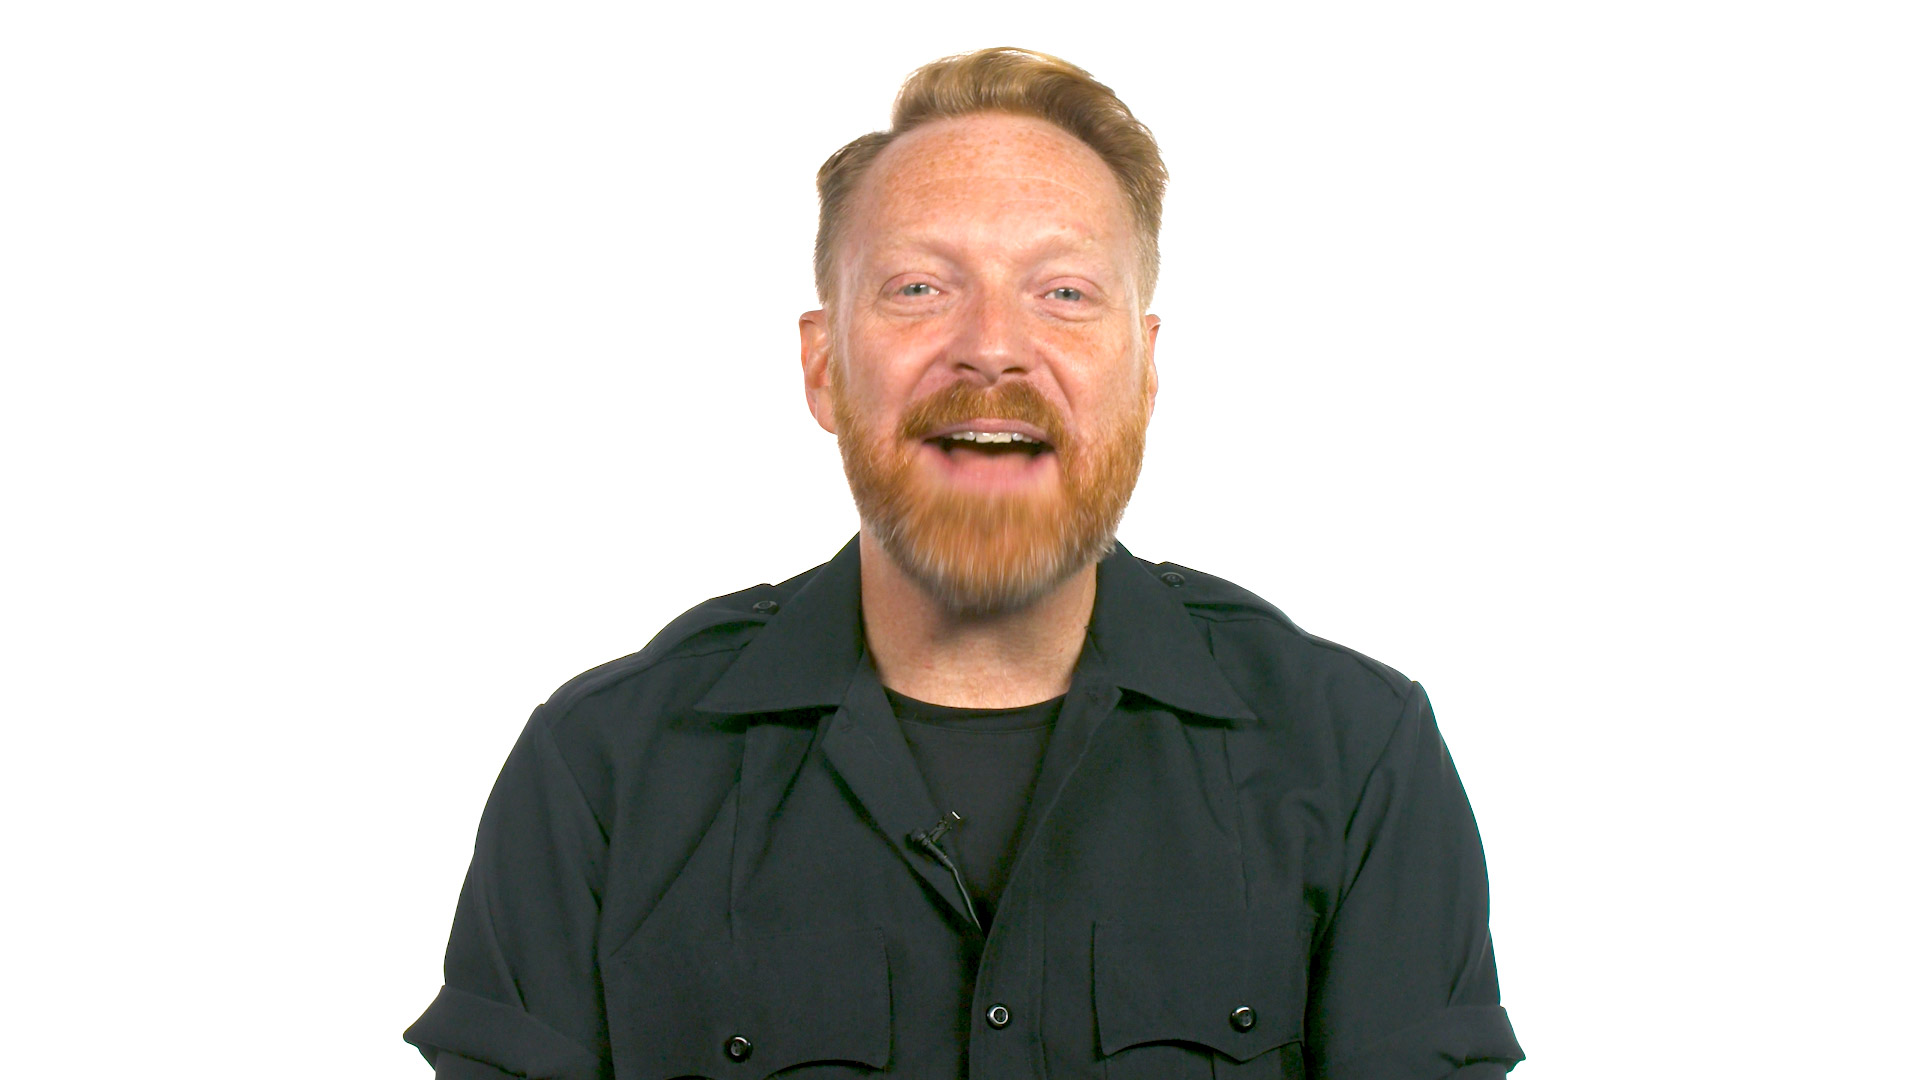 Kevin Allison's First Time Doing Stand Up Comedy